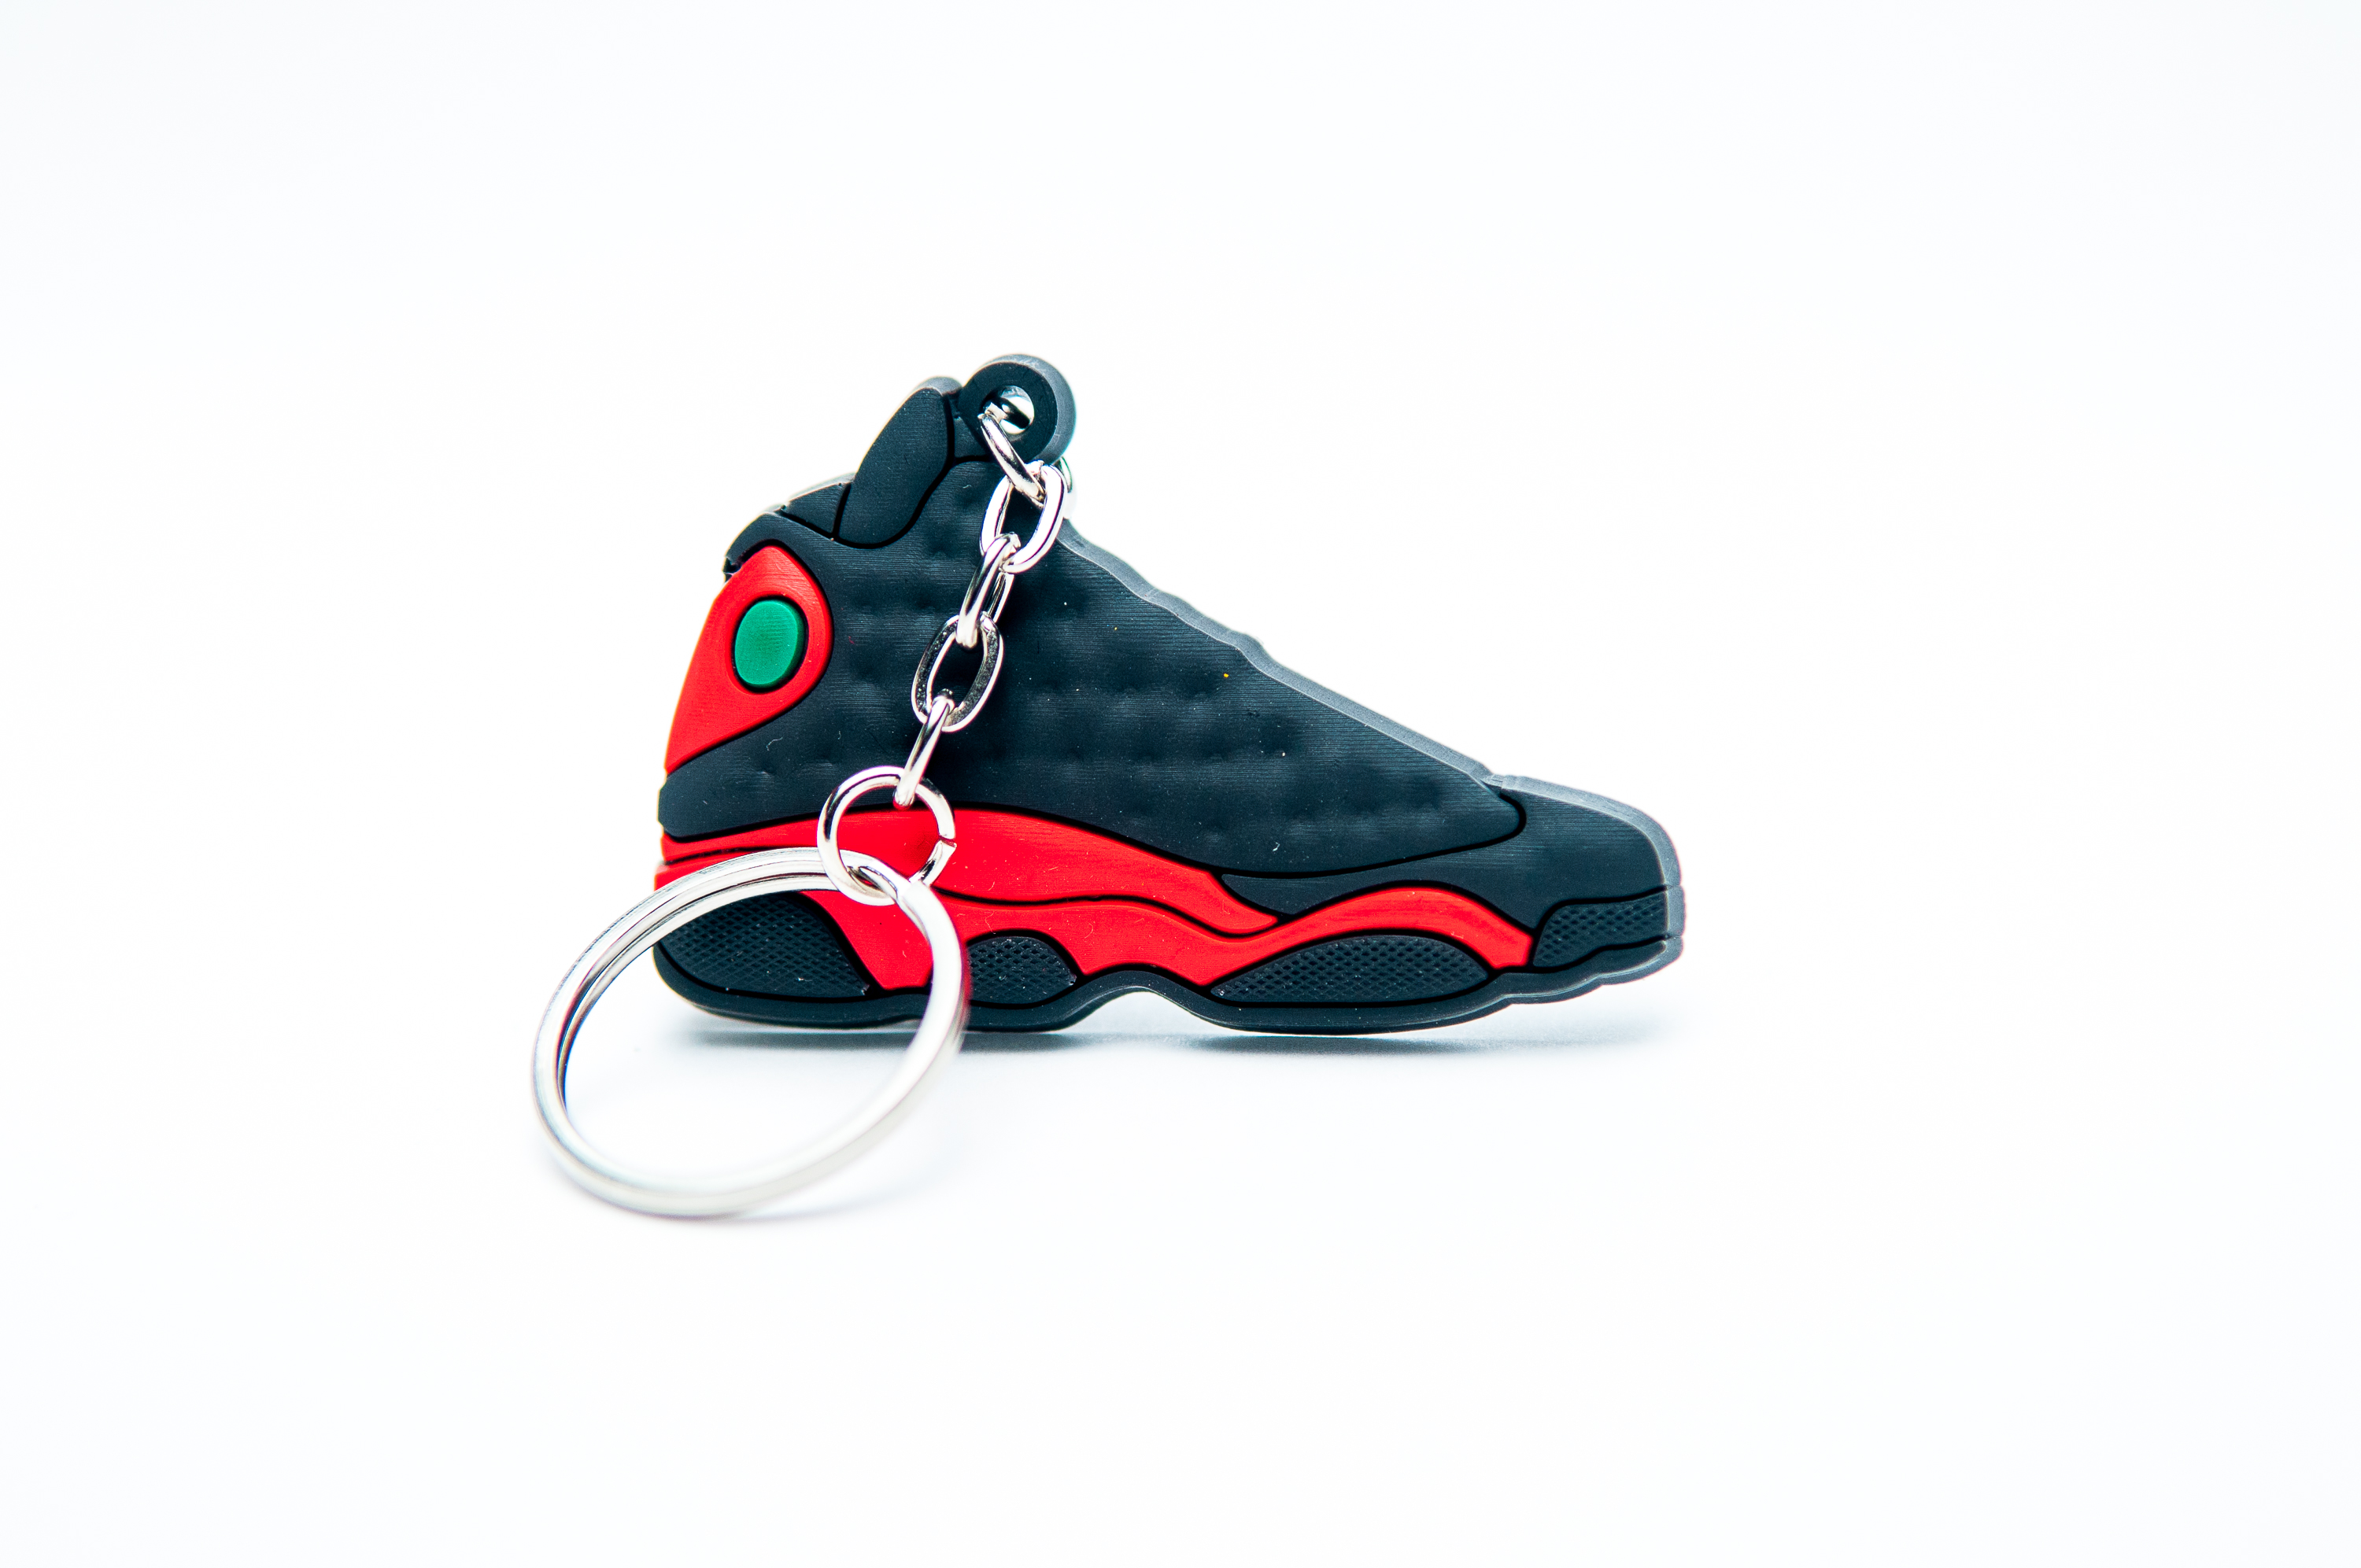 half off 79291 1e32c Nike Air Jordan 13 Retro Black Red - Kool keyringsKool keyrings